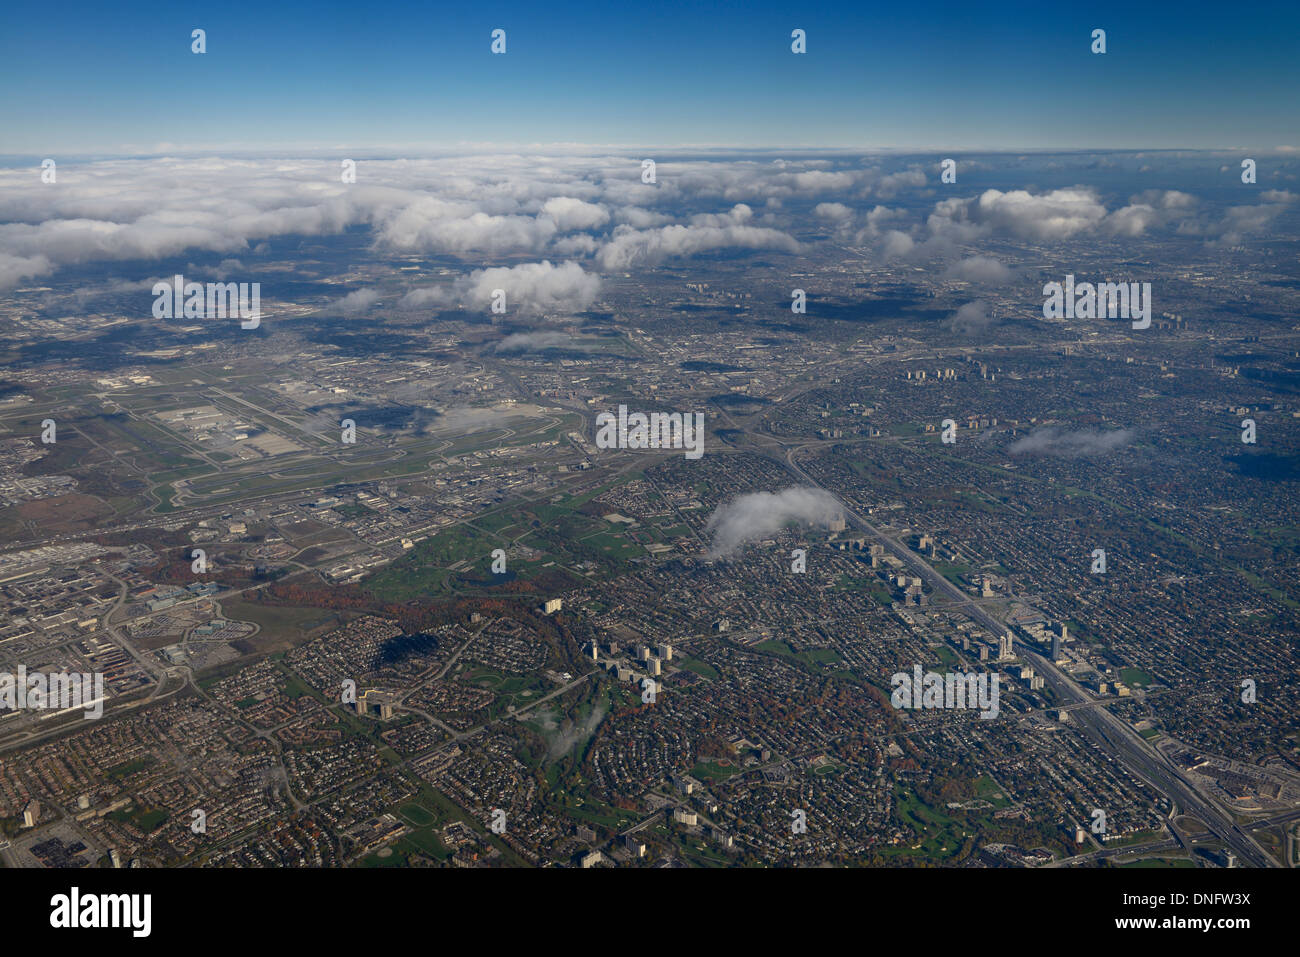 Aerial view of Toronto at highway 401 and 427 with Centennial Park and Pearson International Airport - Stock Image